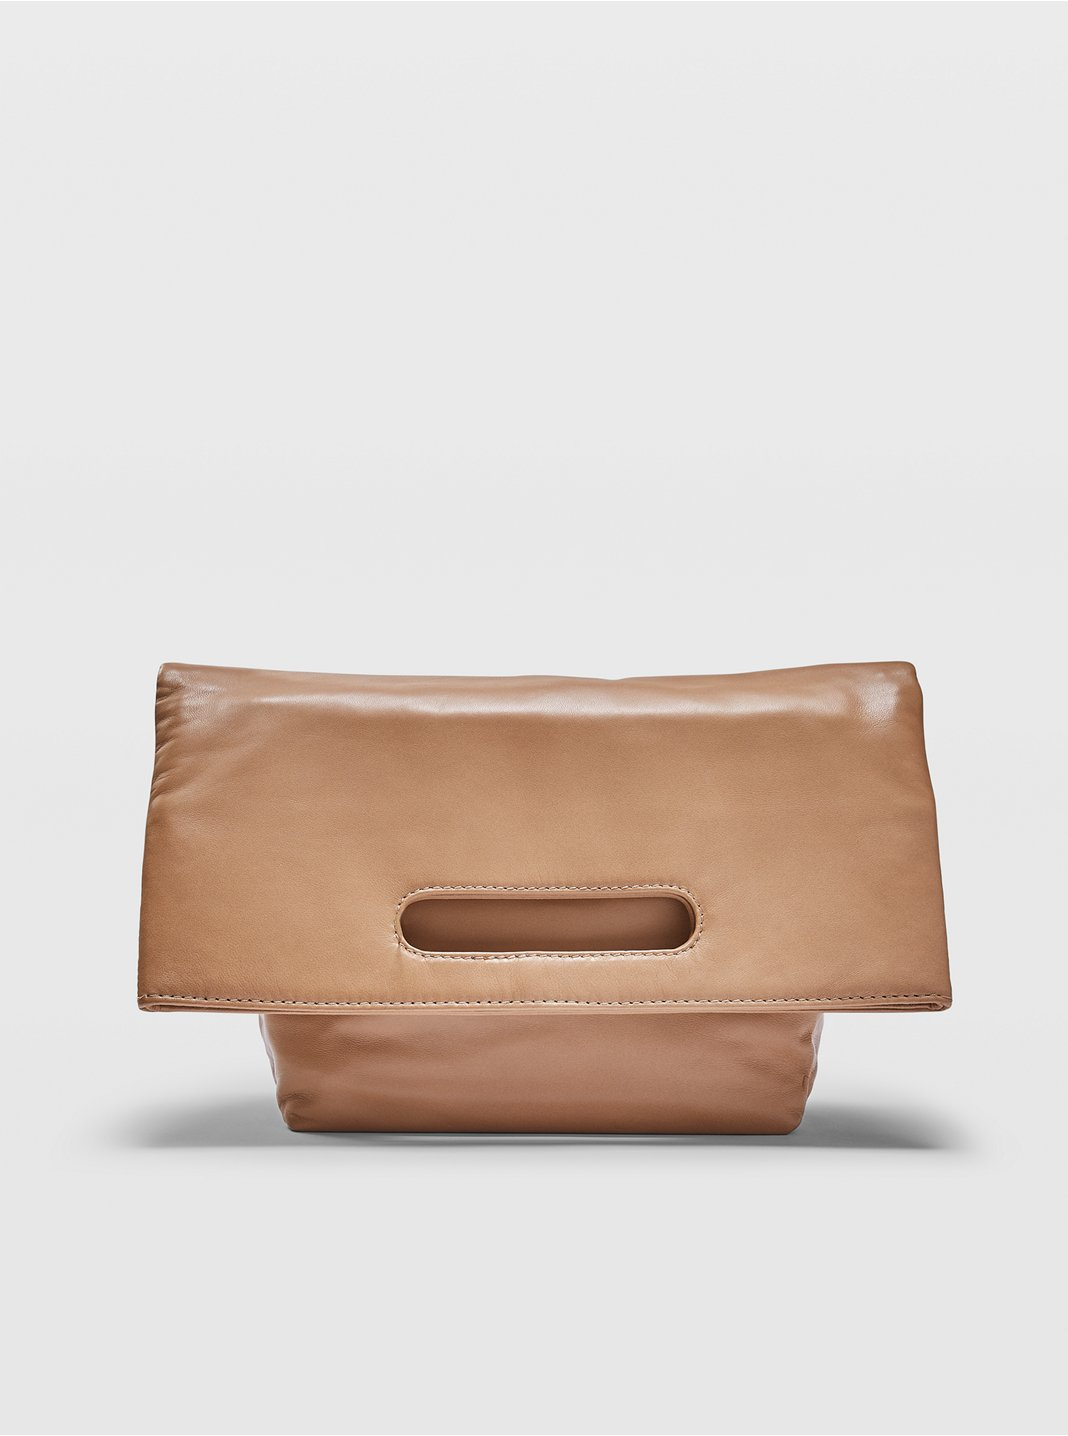 Foldable Leather Tote